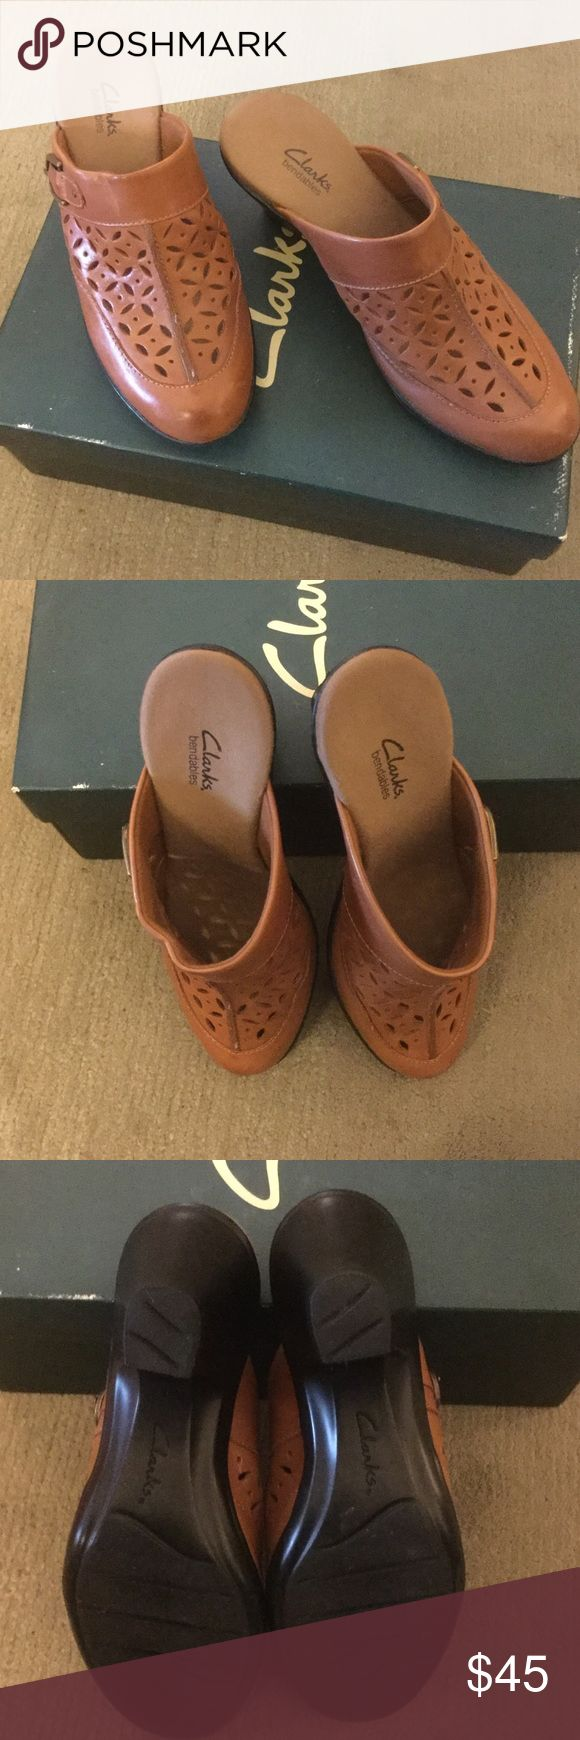 """Clarks Mule/Clog shoes - NWOT Great shoes!!!  Leather, perforated upper...heel is approximately 2 1/2"""" (molded in).  Never used!  Tannish-brown Clarks Shoes Mules & Clogs"""